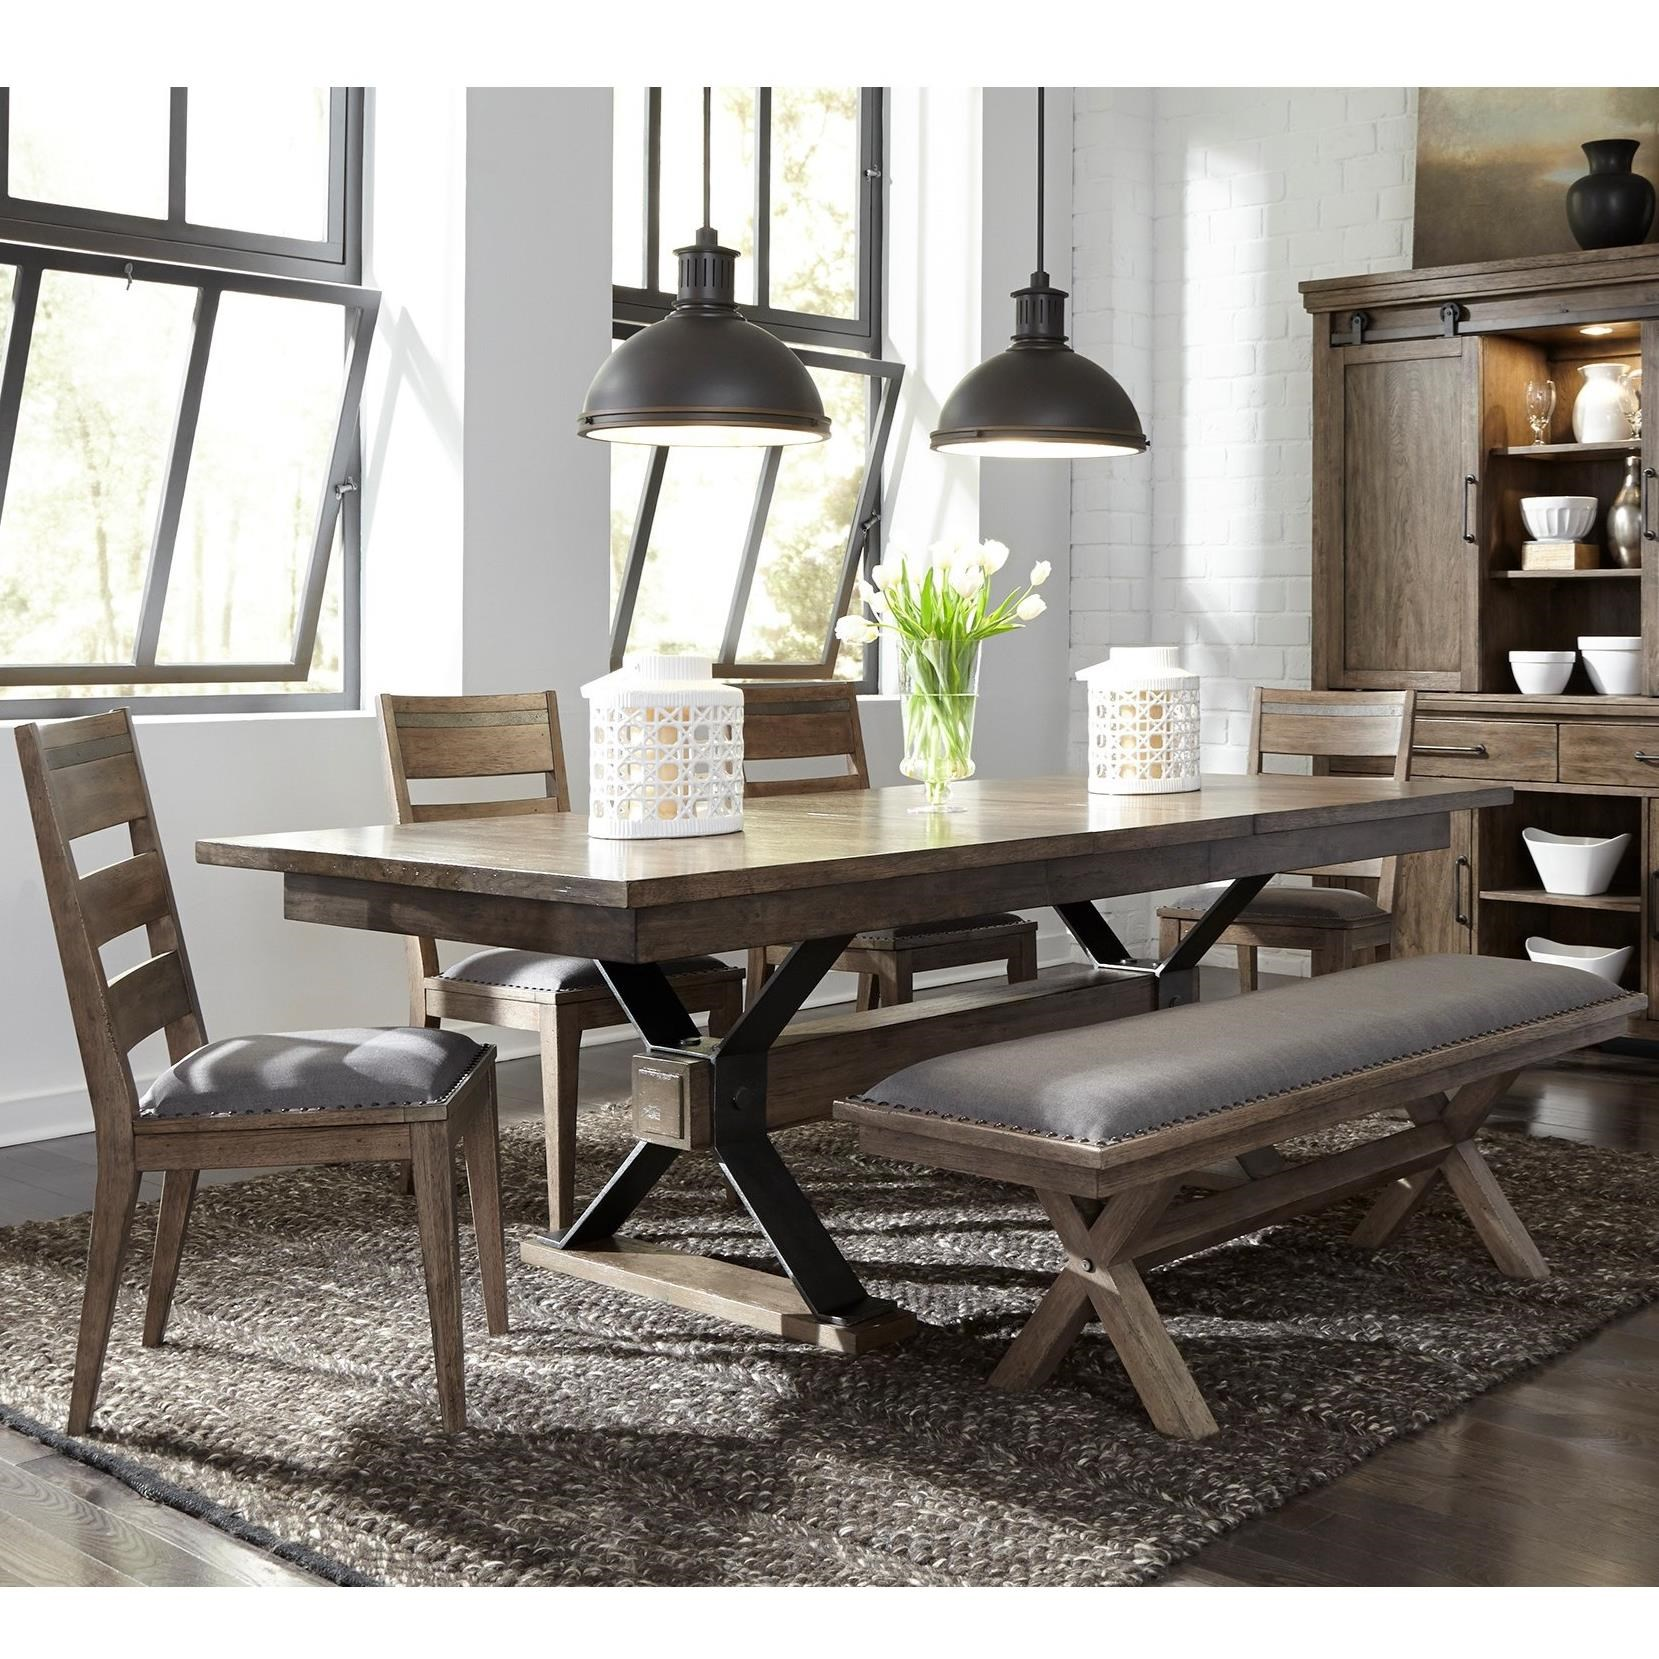 Sonoma Road 6 Piece Table and Chair Set  by Liberty Furniture at Johnny Janosik